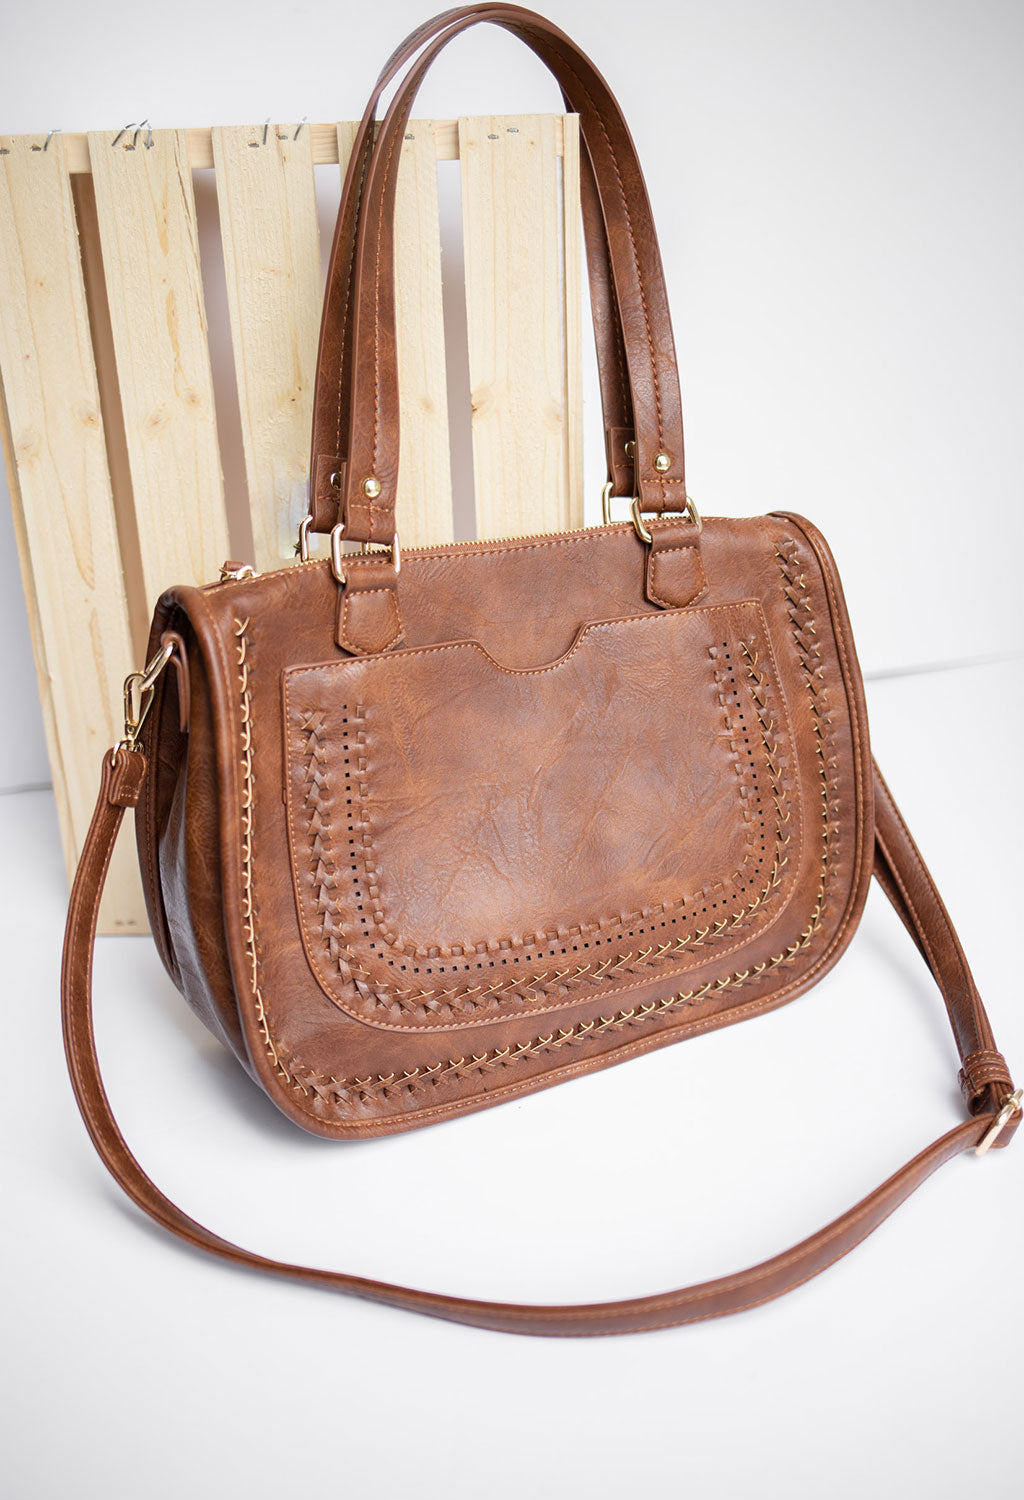 Priscilla Satchel Bag with Long Strap